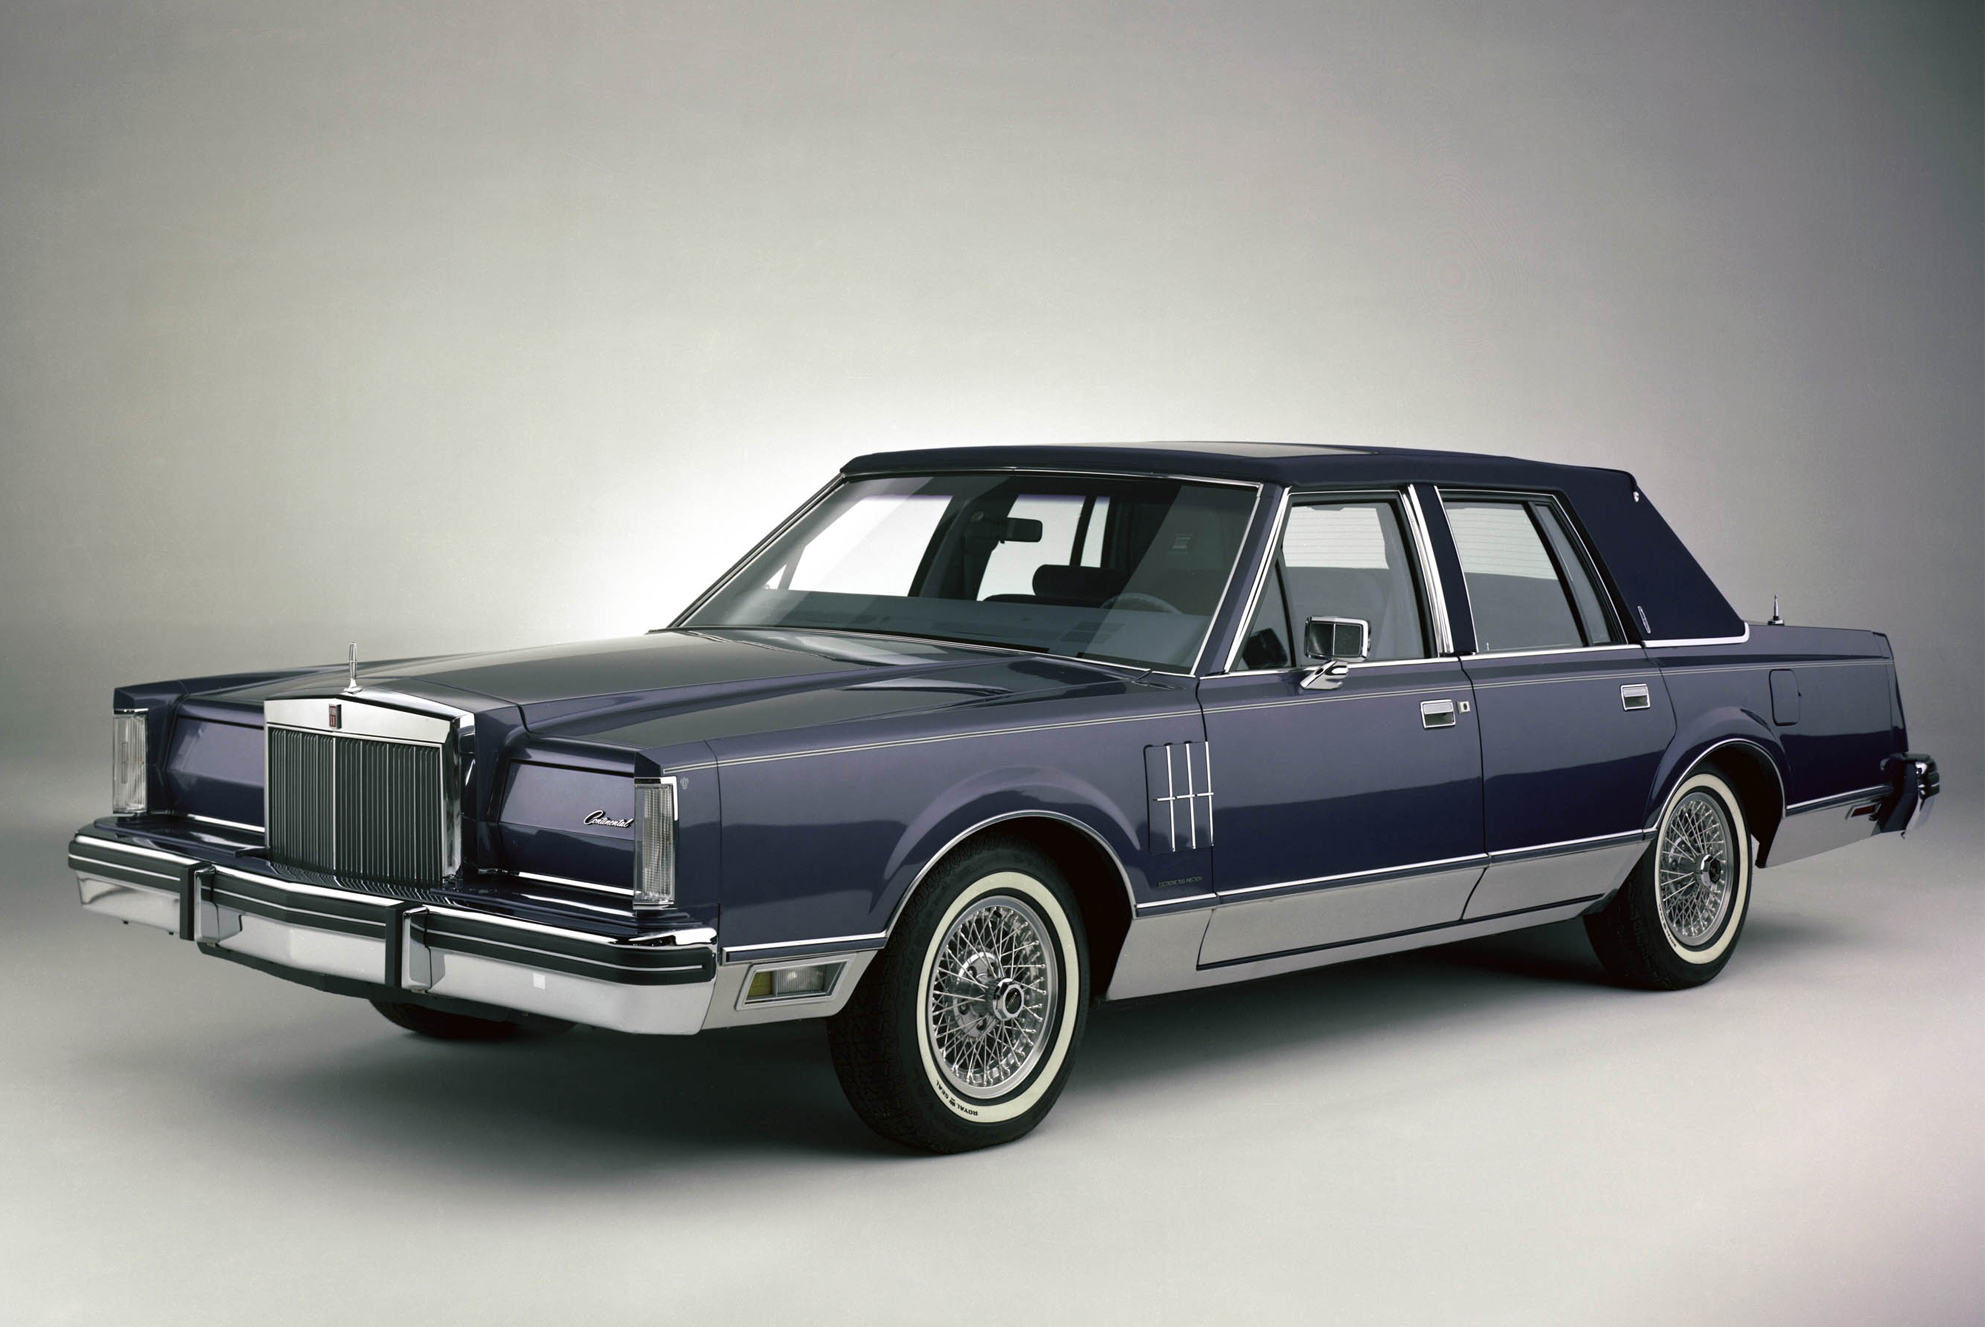 lincoln_continental_mark_vi_pucci_edition_sedan_1